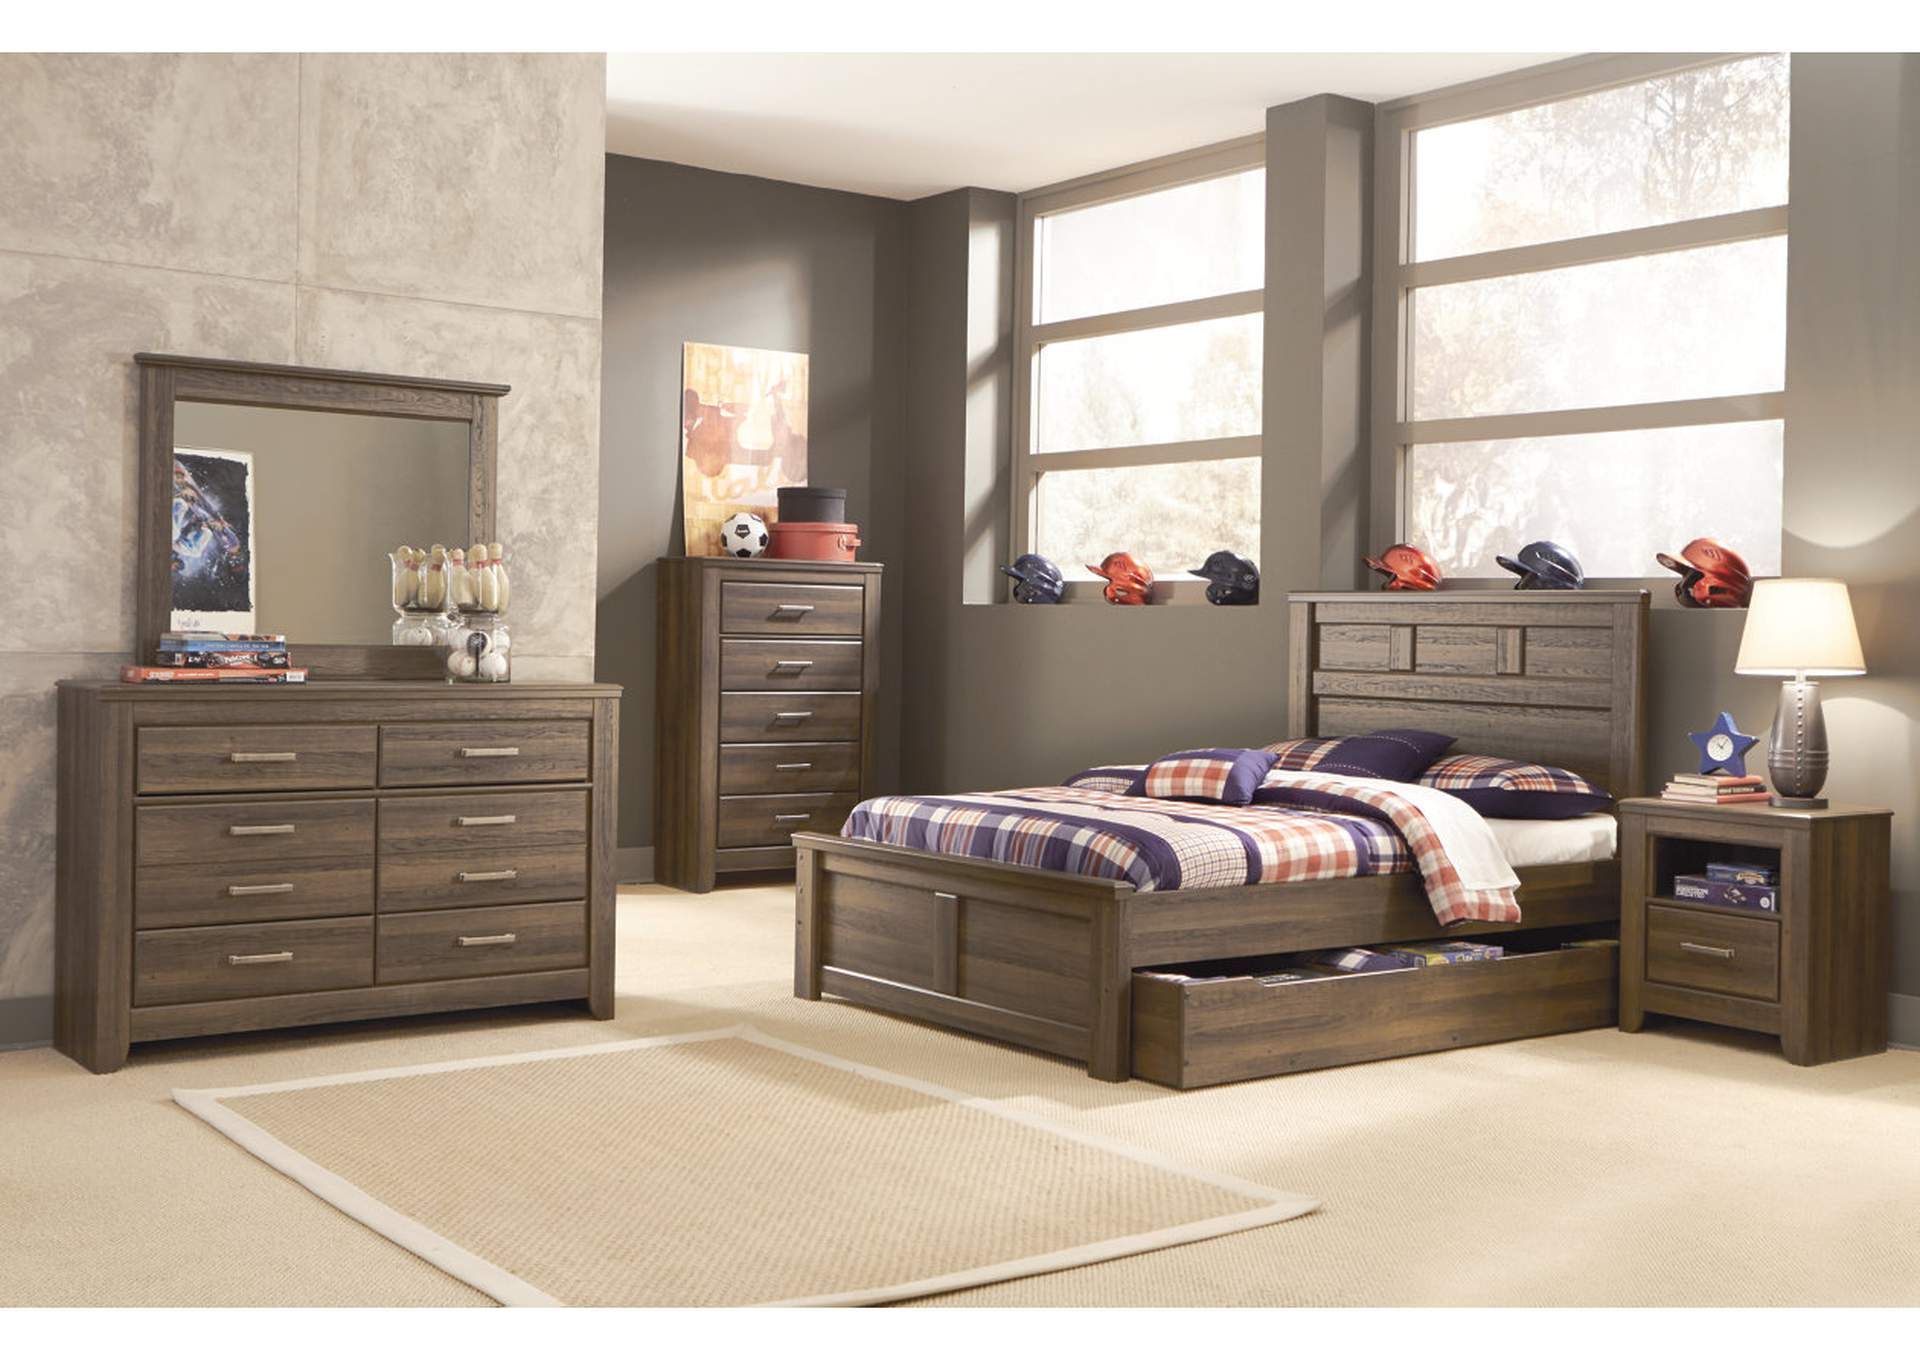 Juararo Full Panel Storage Bed w/Dresser, Mirror, Chest & One Drawer Nightstand,Signature Design By Ashley